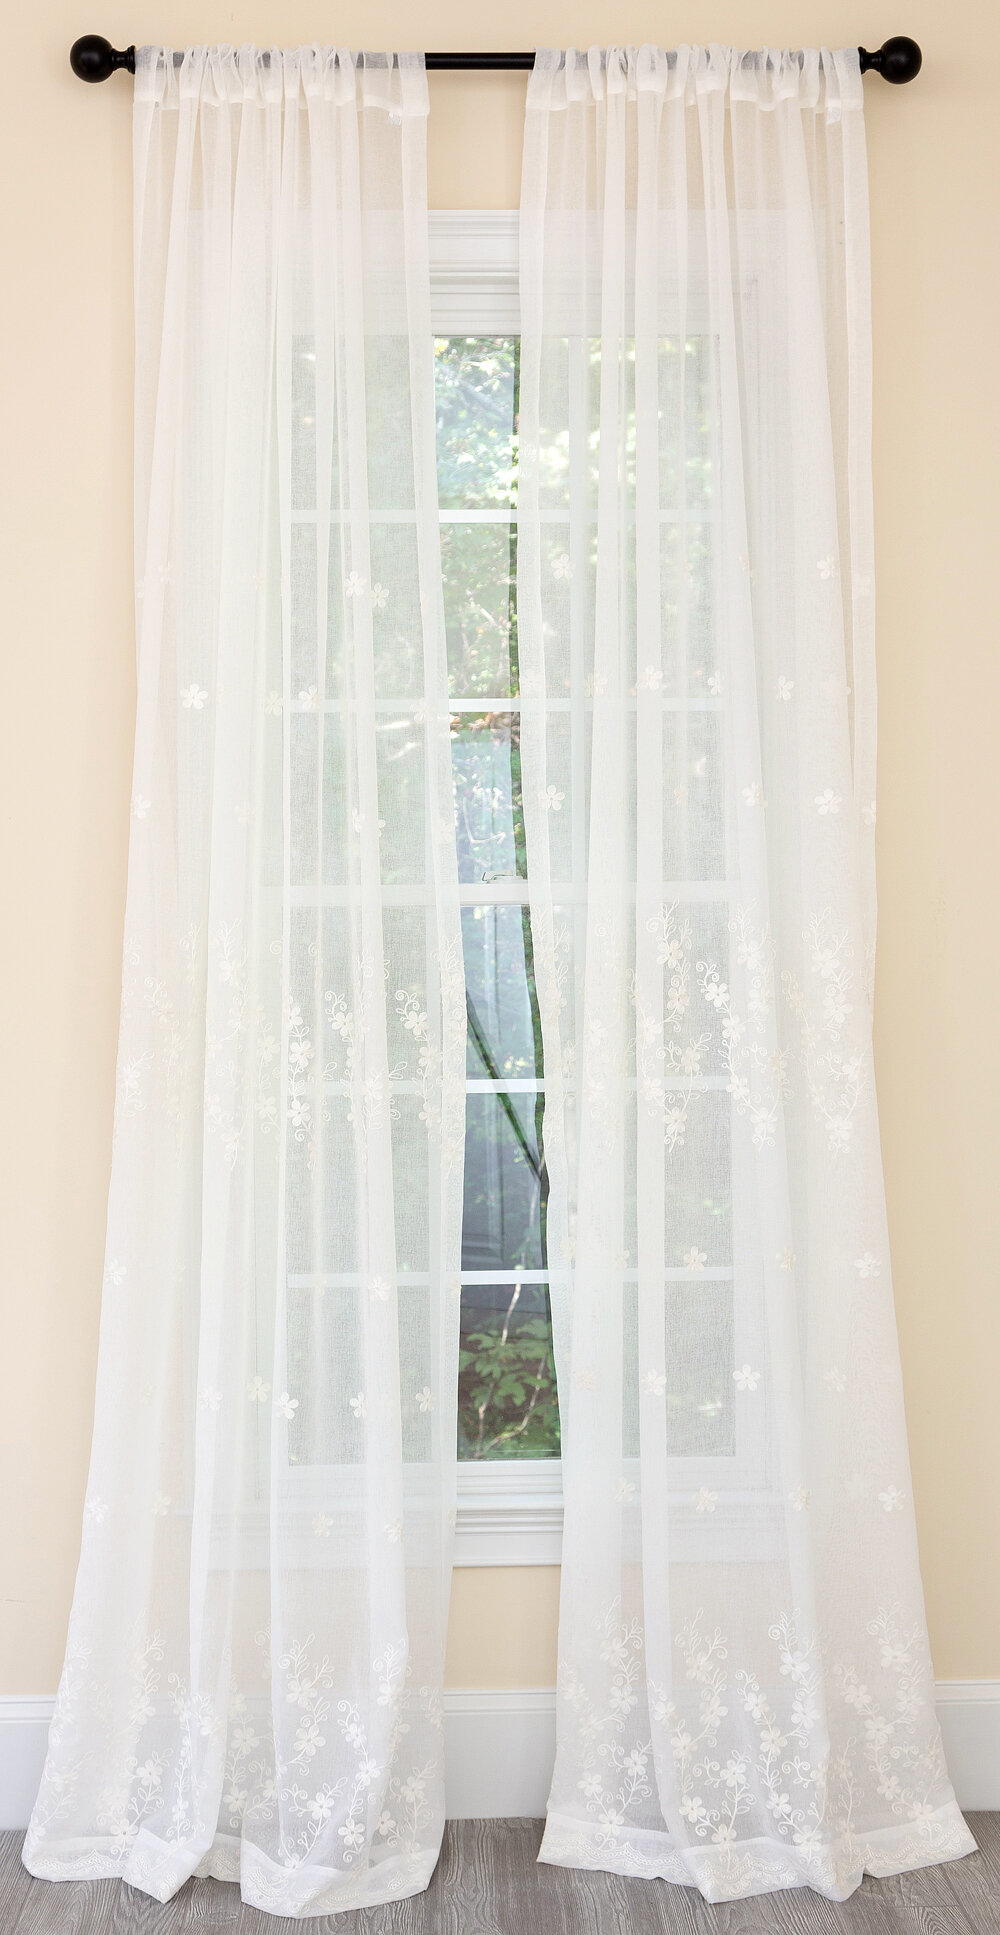 Red Barrel Studio Boothe Blossom Embroidered Floral Sheer Rod Pocket Single Curtain Panel Reviews Wayfair